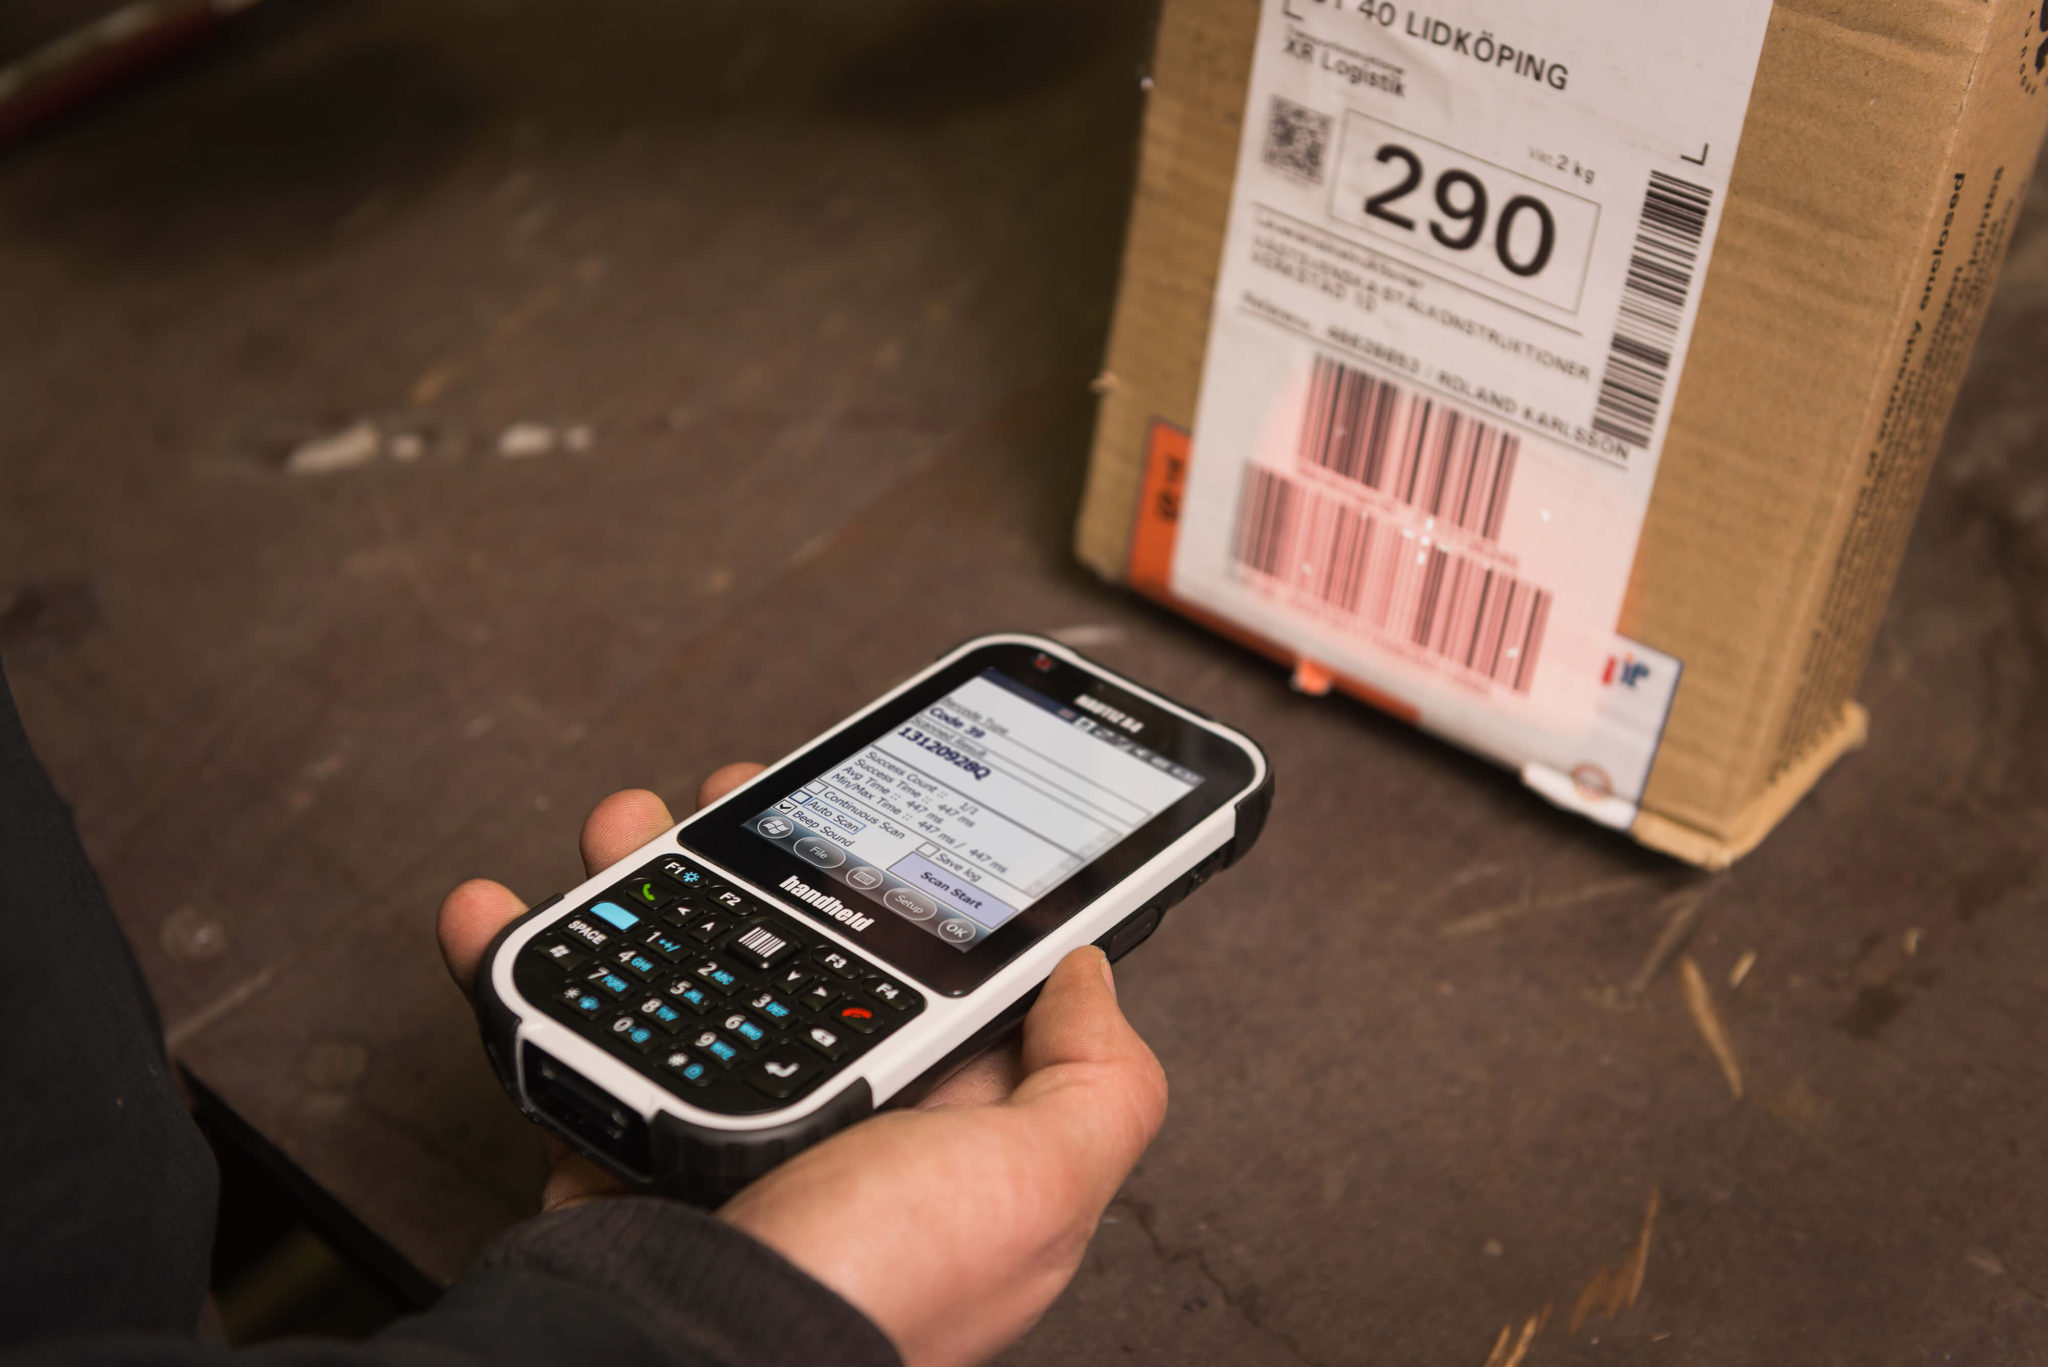 handheld-nautiz-x4-ip65-warehouse-scanner